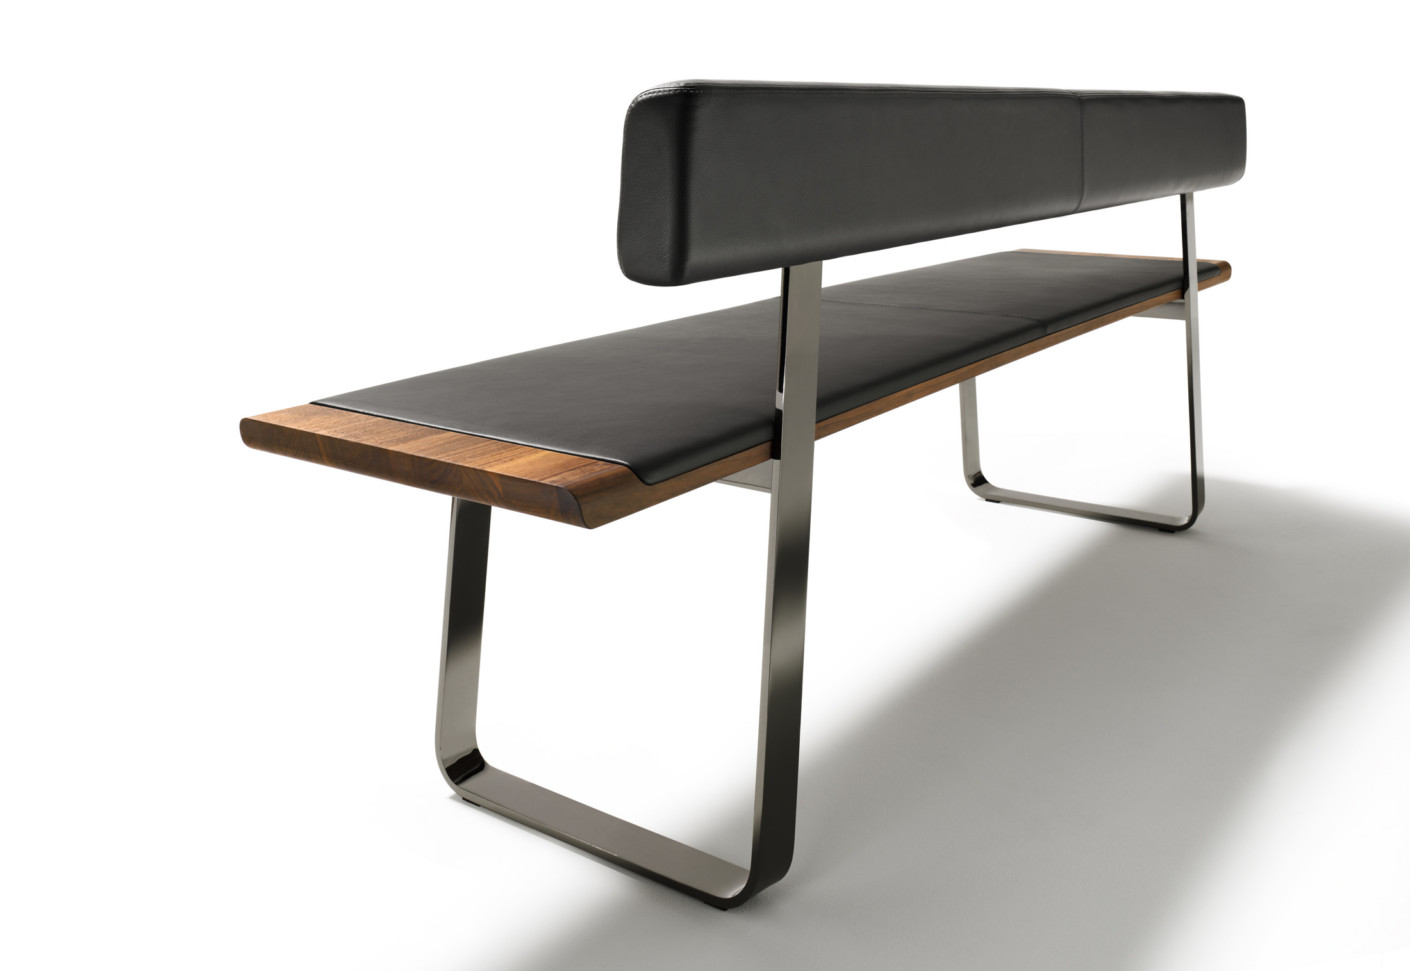 Nox Bench With Backrest By Team 7 Stylepark